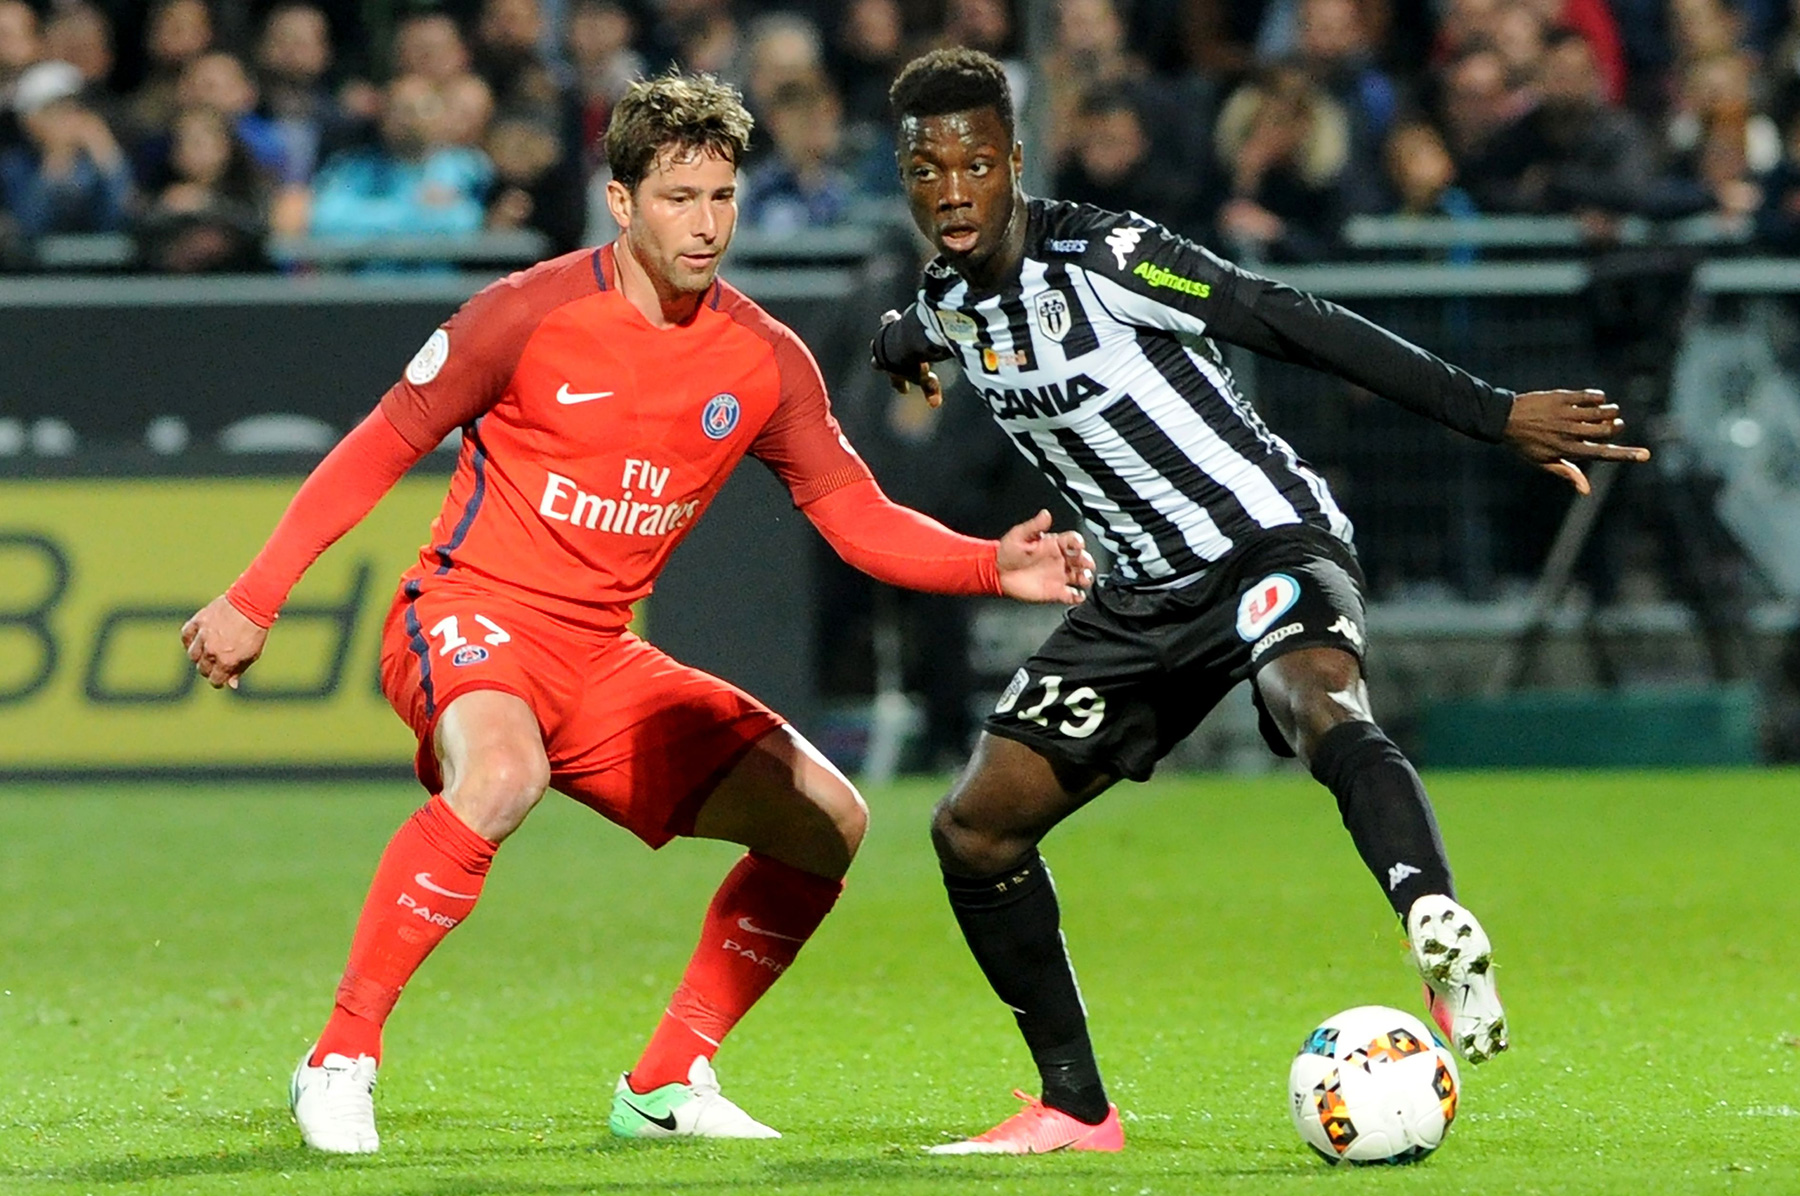 Match preview psg look to end season on a high note in coupe de france final psg talk - Coupe de france predictions ...